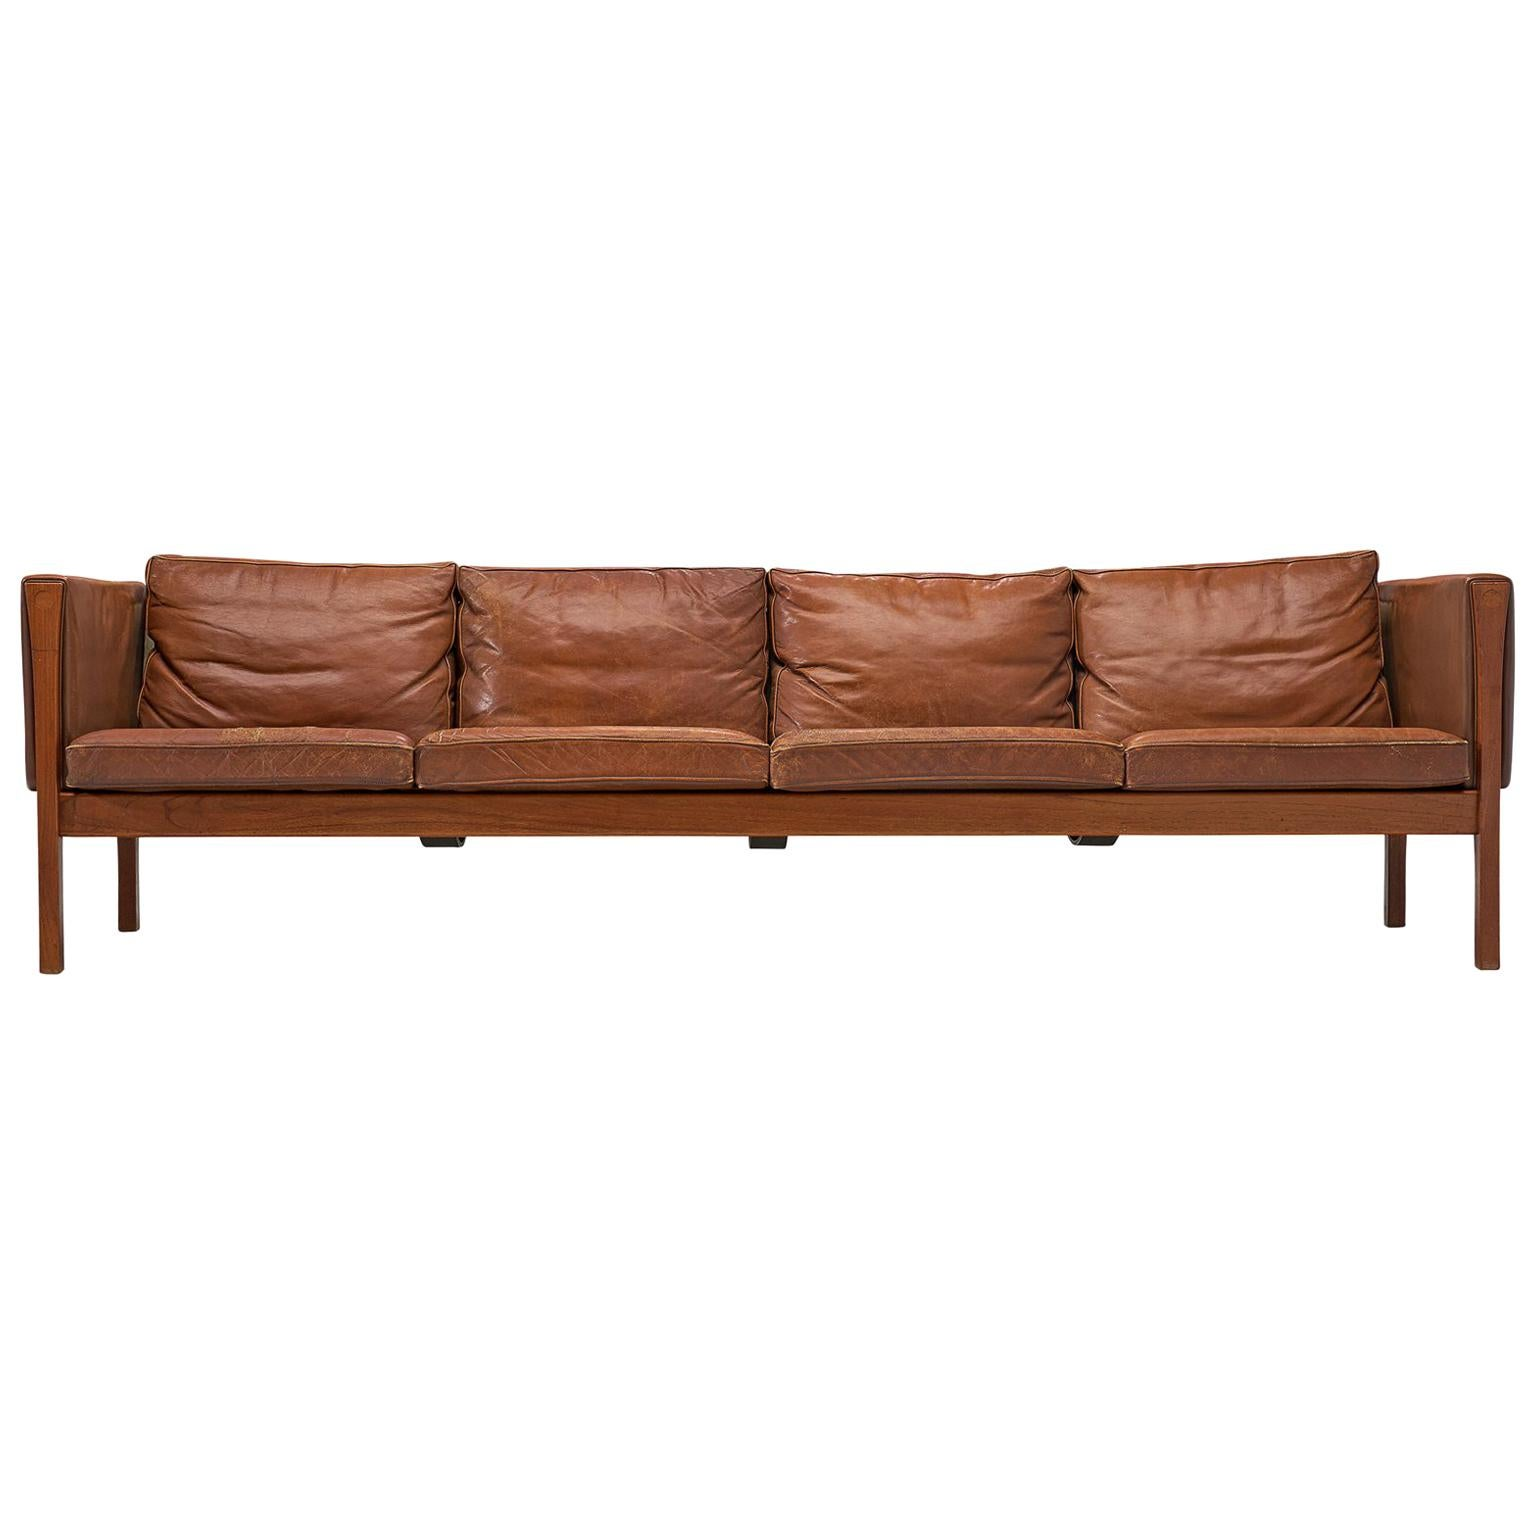 Sofa 60s 1960s Sofas 1 231 For Sale At 1stdibs